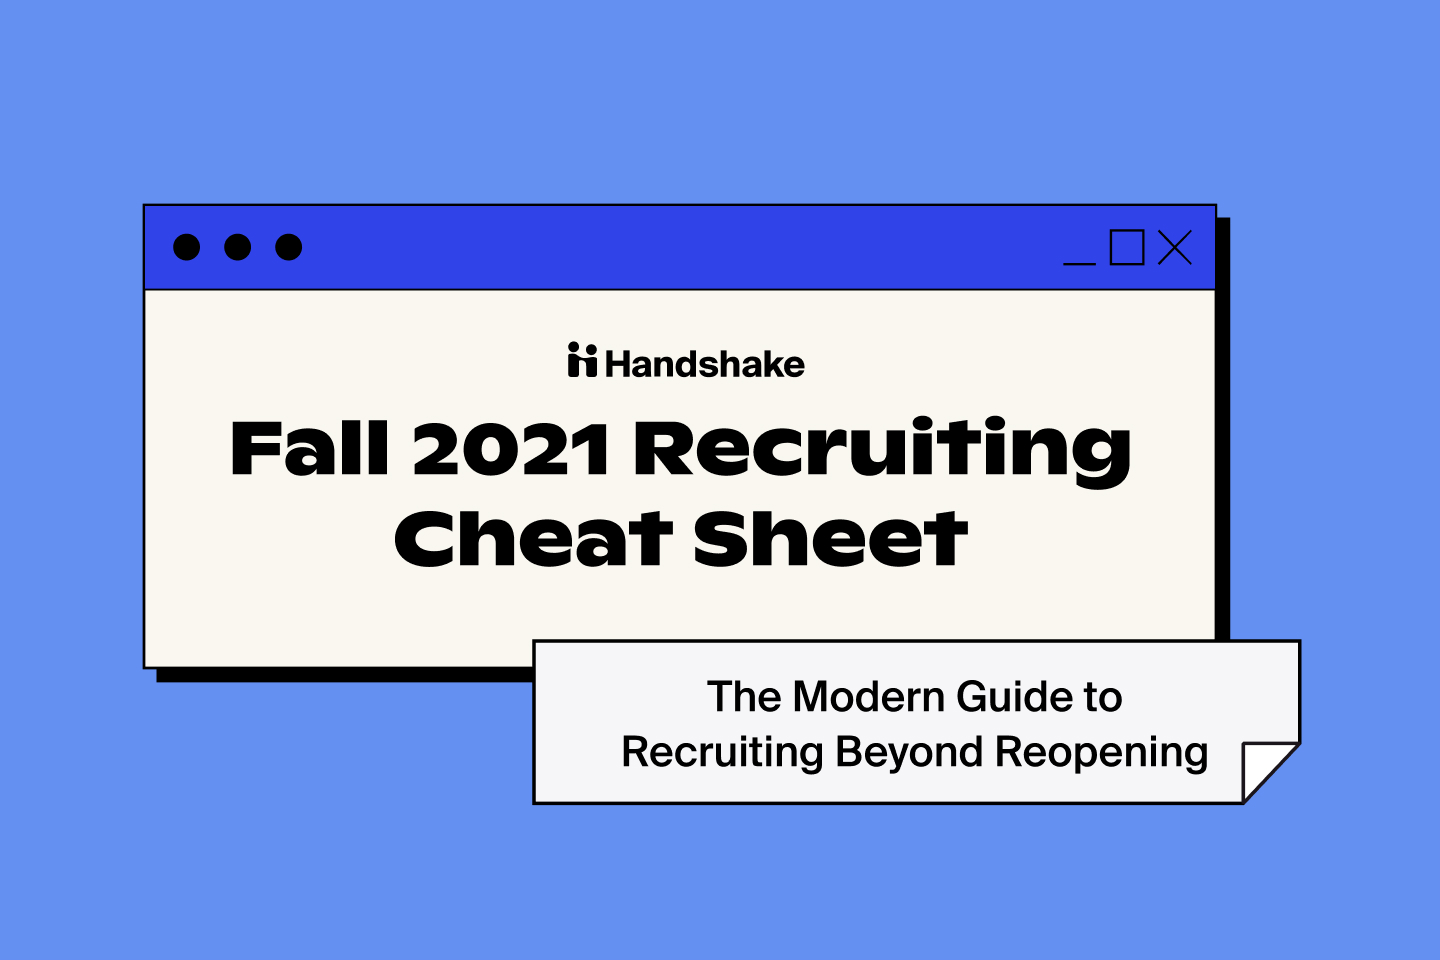 Fall 2021 Recruiting Cheat Sheet: The Modern Guide to Recruiting Beyond Reopening